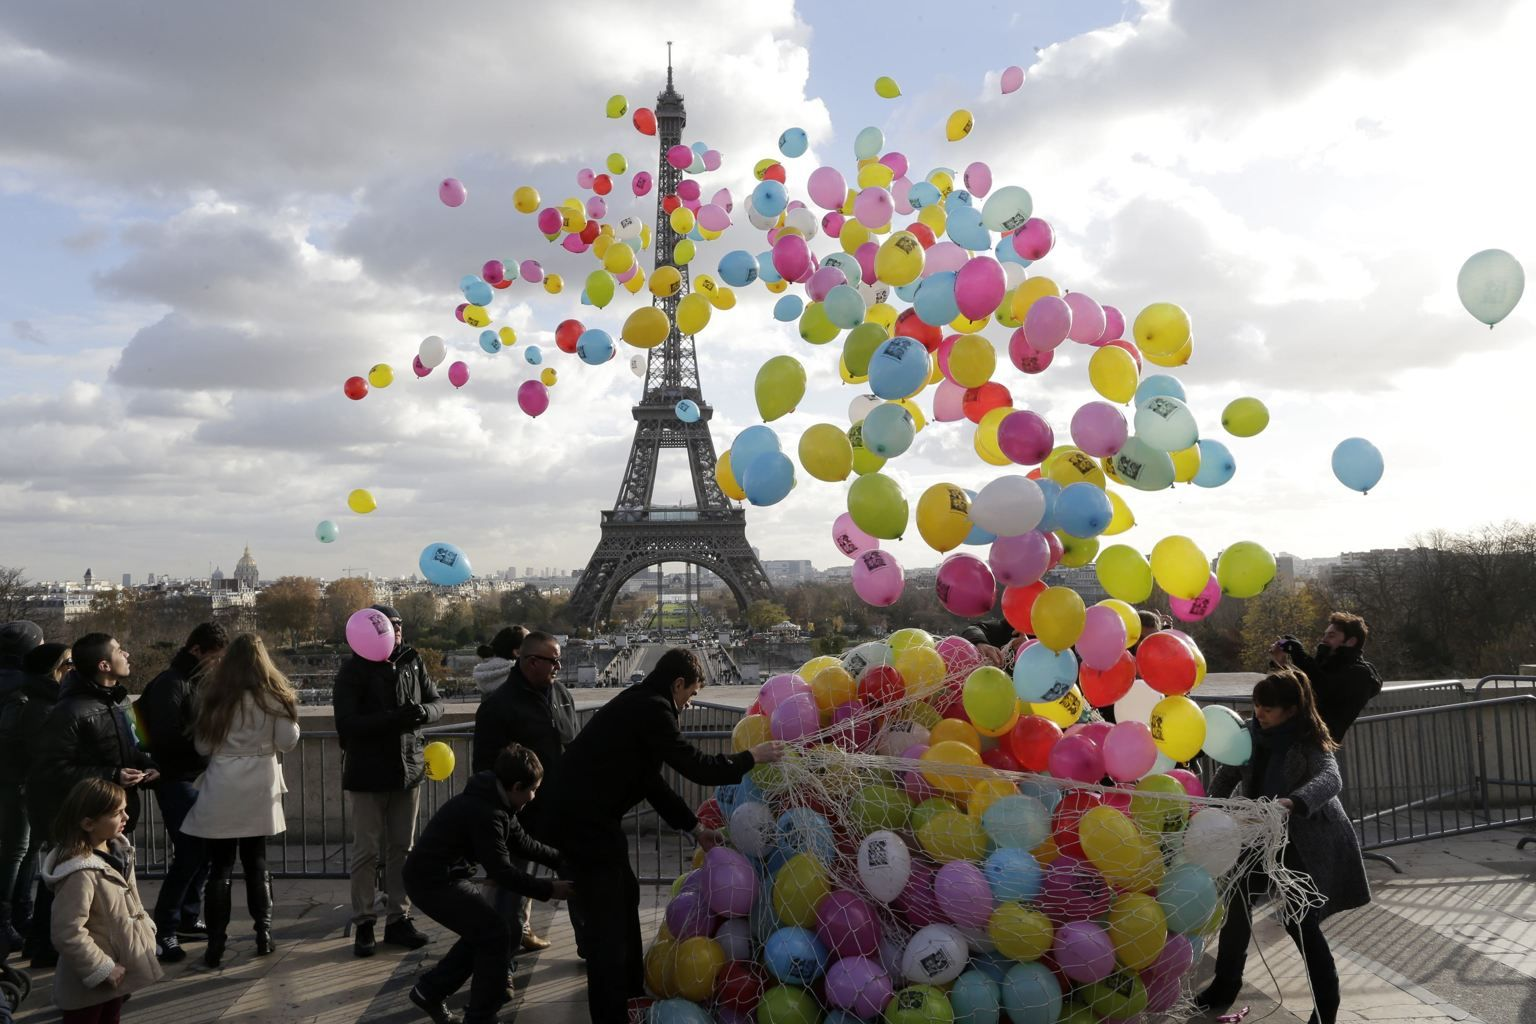 Balloons are released into the air in front of the Eiffel